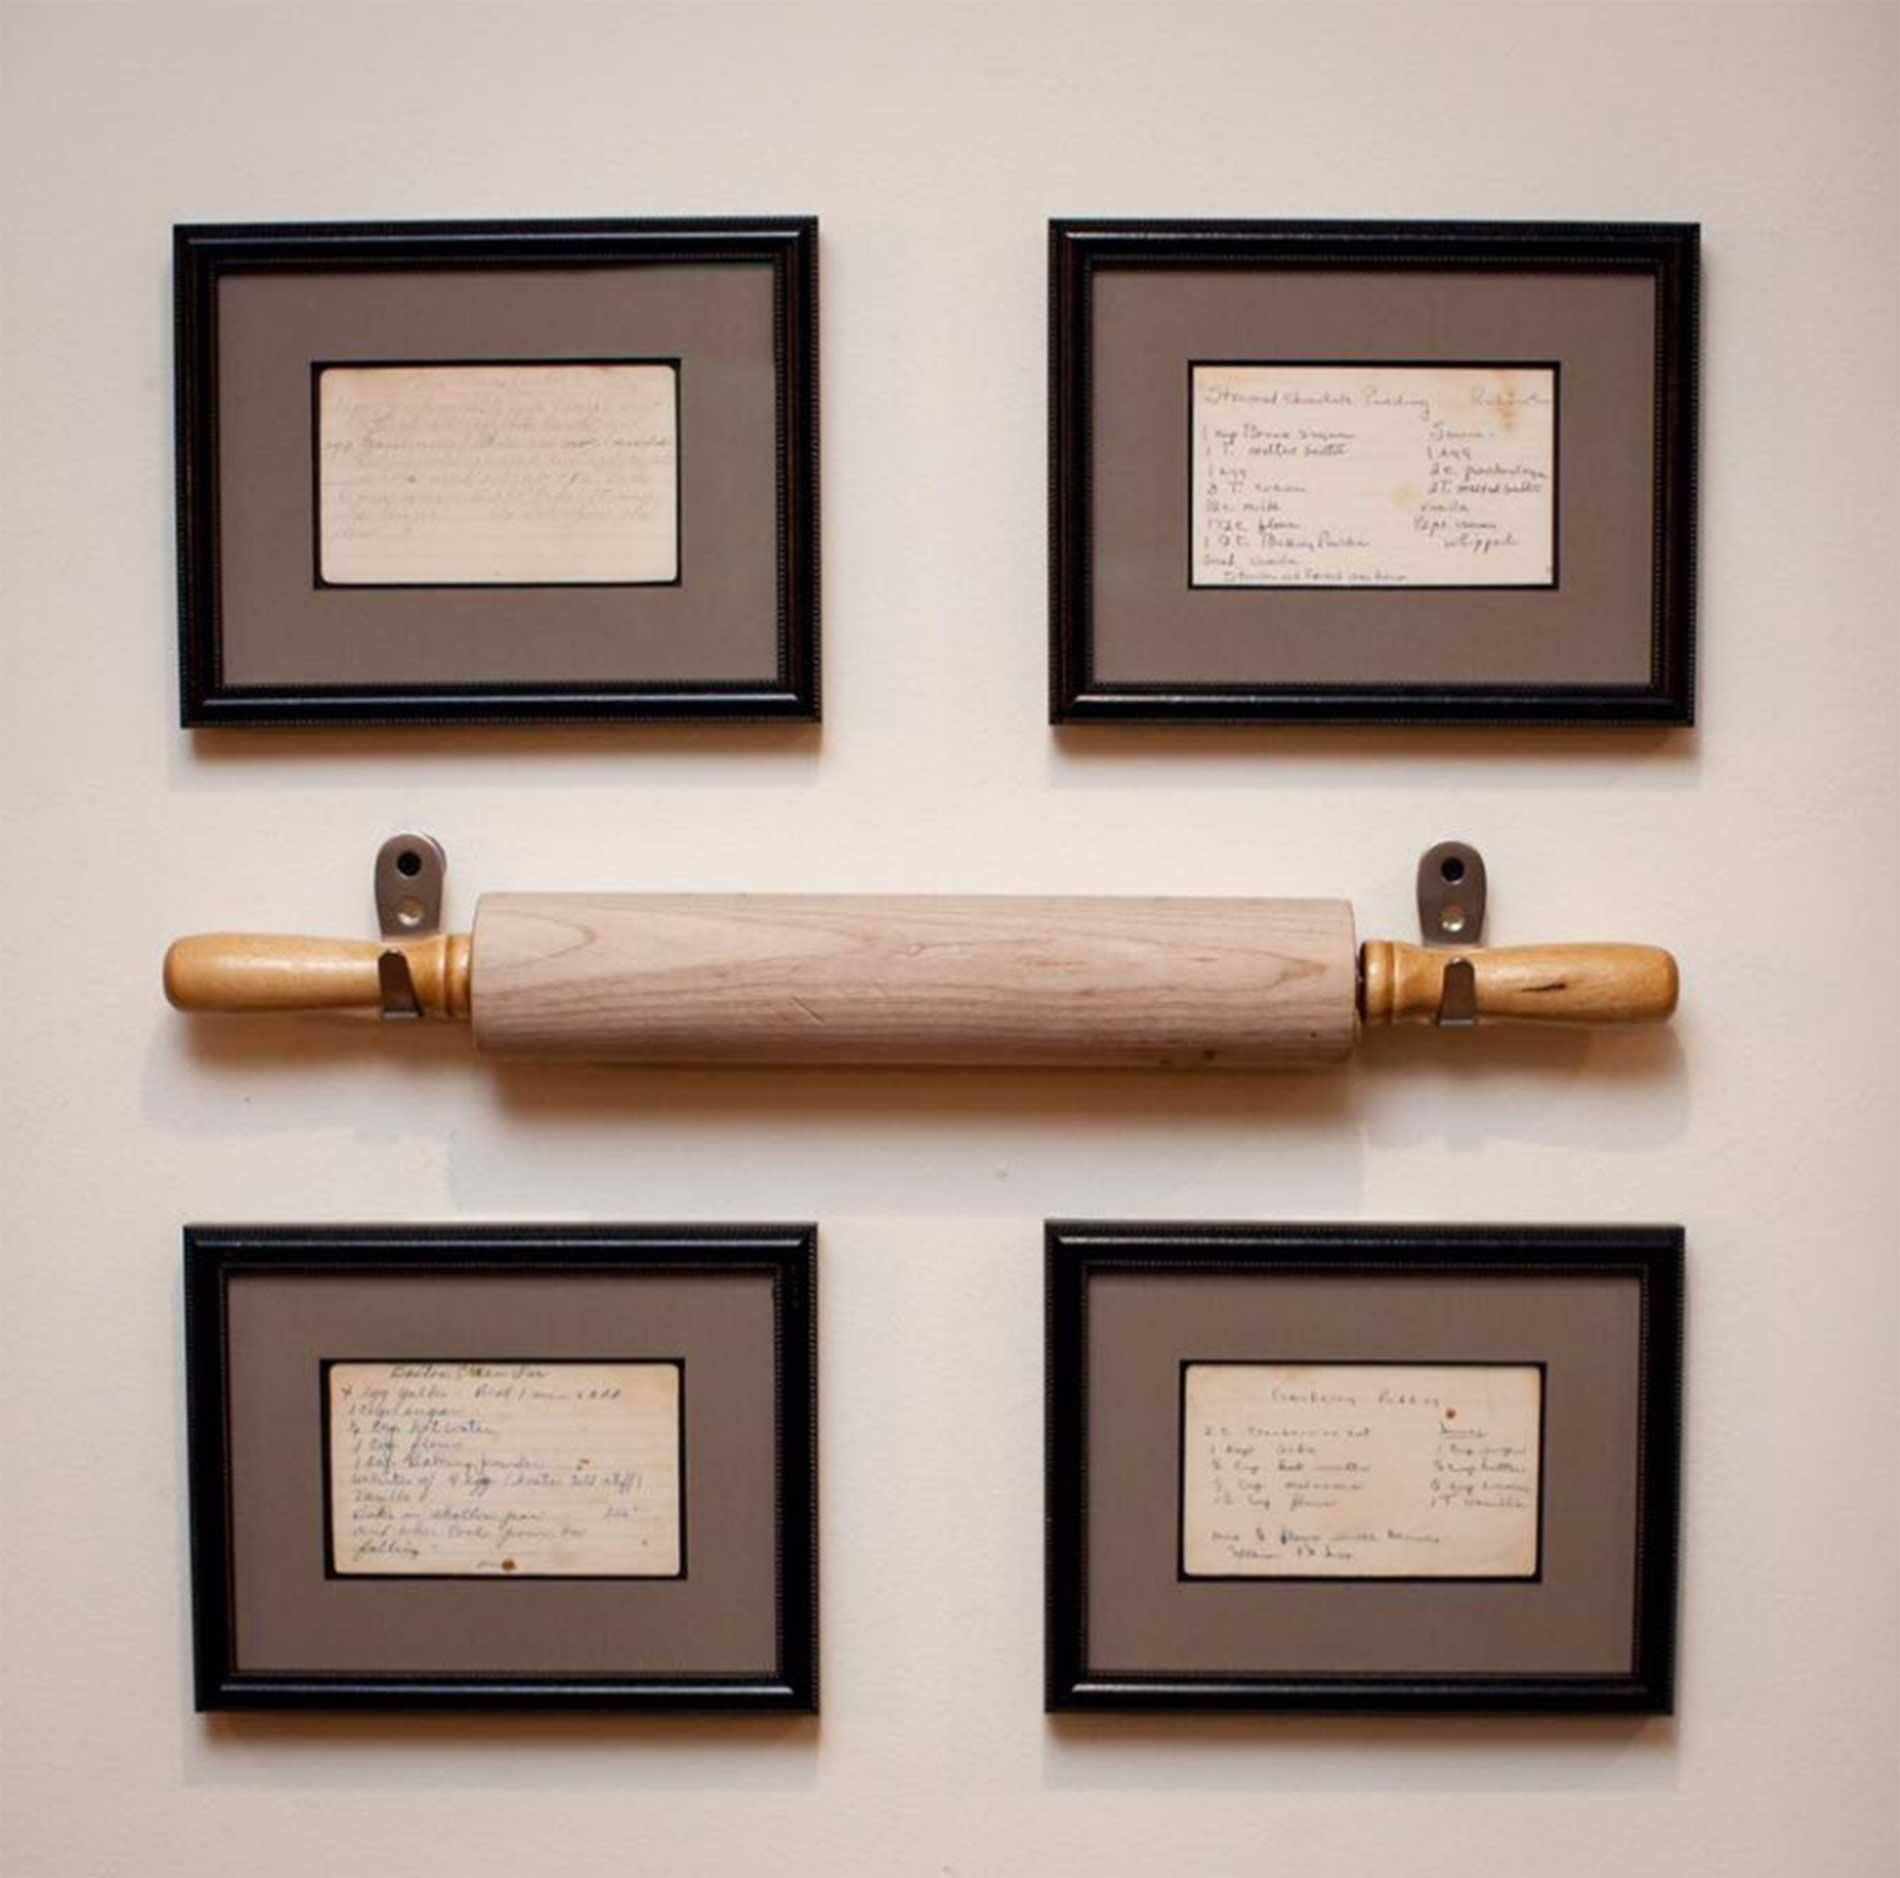 image vintage kitchen craft ideas. Frame Family Members Hand Written Recipes. Use Antique Rolling Pin Or Any Other Kitchen Utensil Image Vintage Craft Ideas